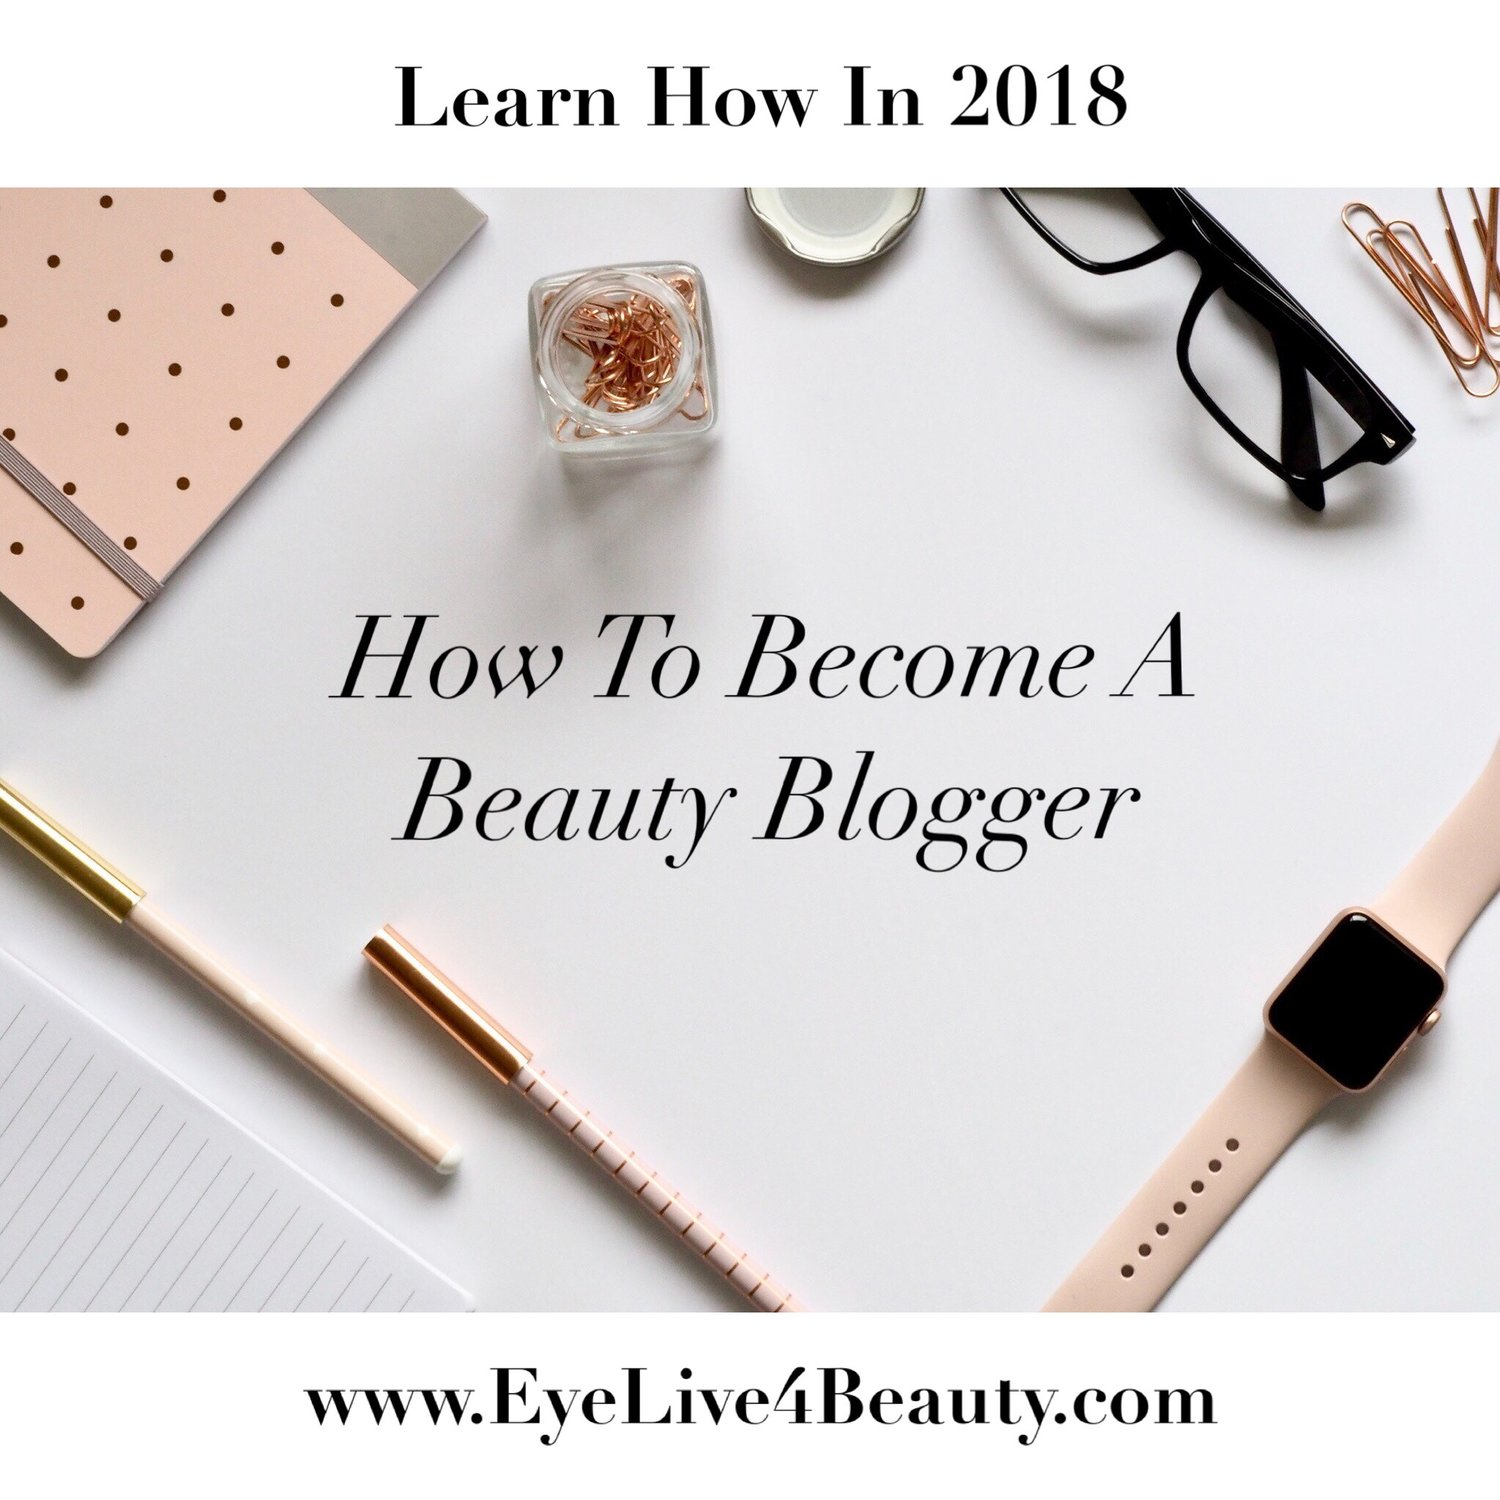 @eyelive4beauty's cover photo for 'How To Become A Beauty Blogger'